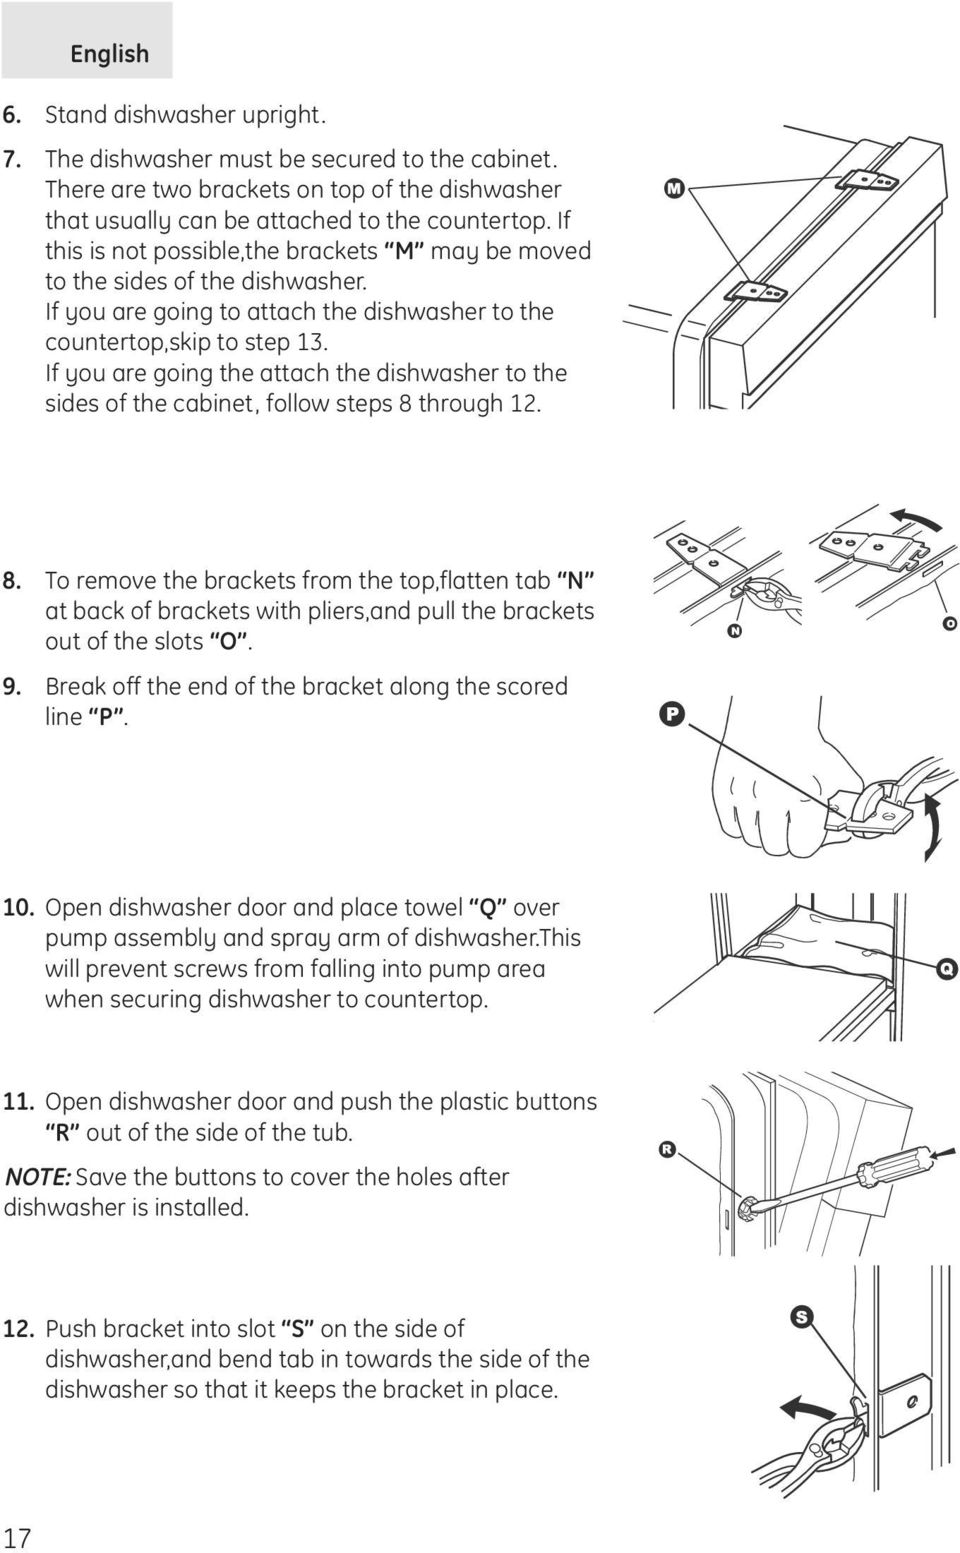 If you are going the attach the dishwasher to the sides of the cabinet, follow steps 8